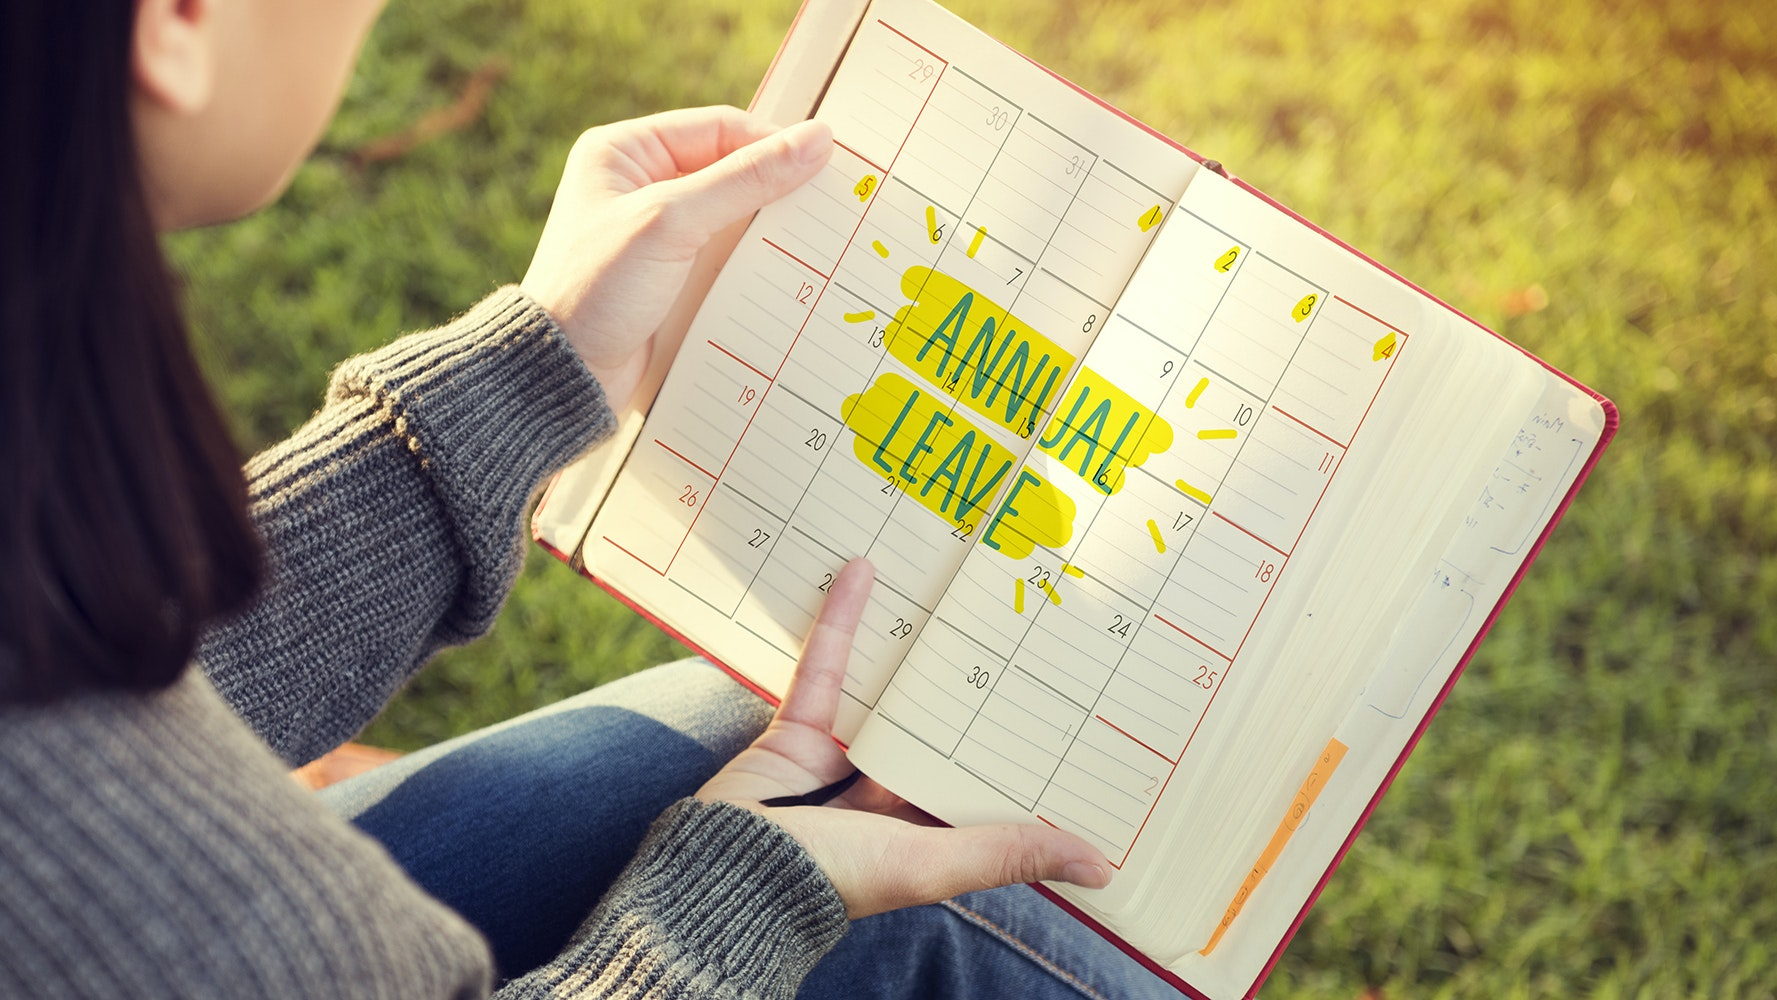 Photo of calendar or diary with annual leave highlighted